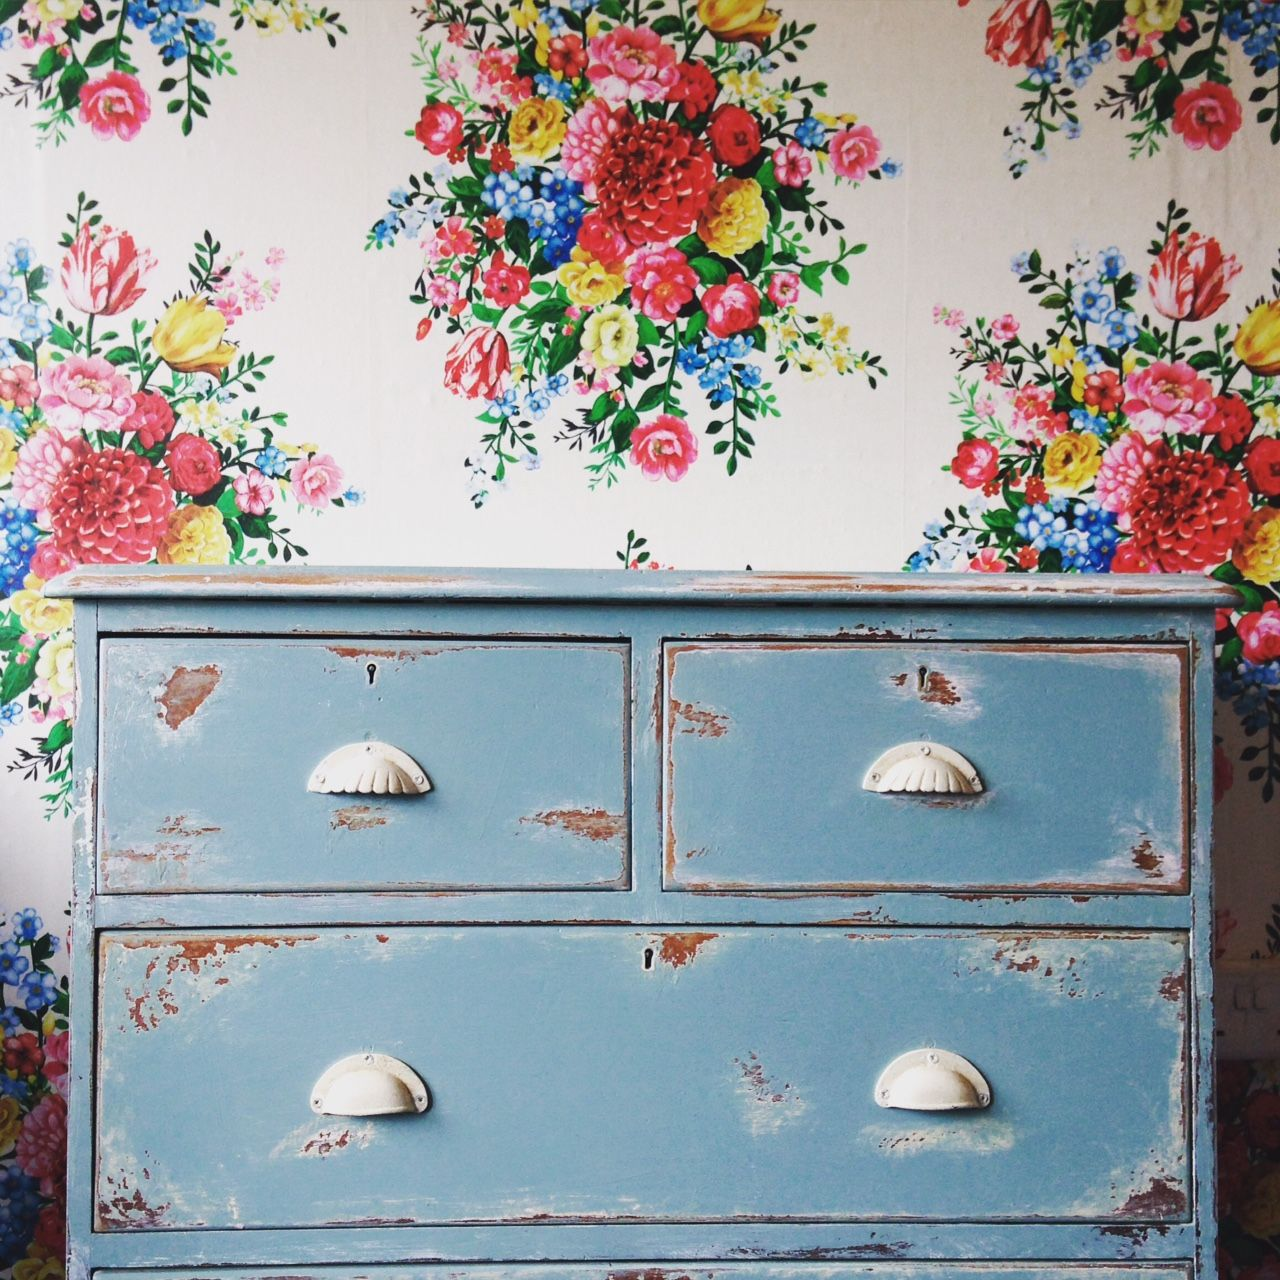 Shop Kyle Lane Hand Painted Dressers Patchwork Armchair Upcycle Dresser